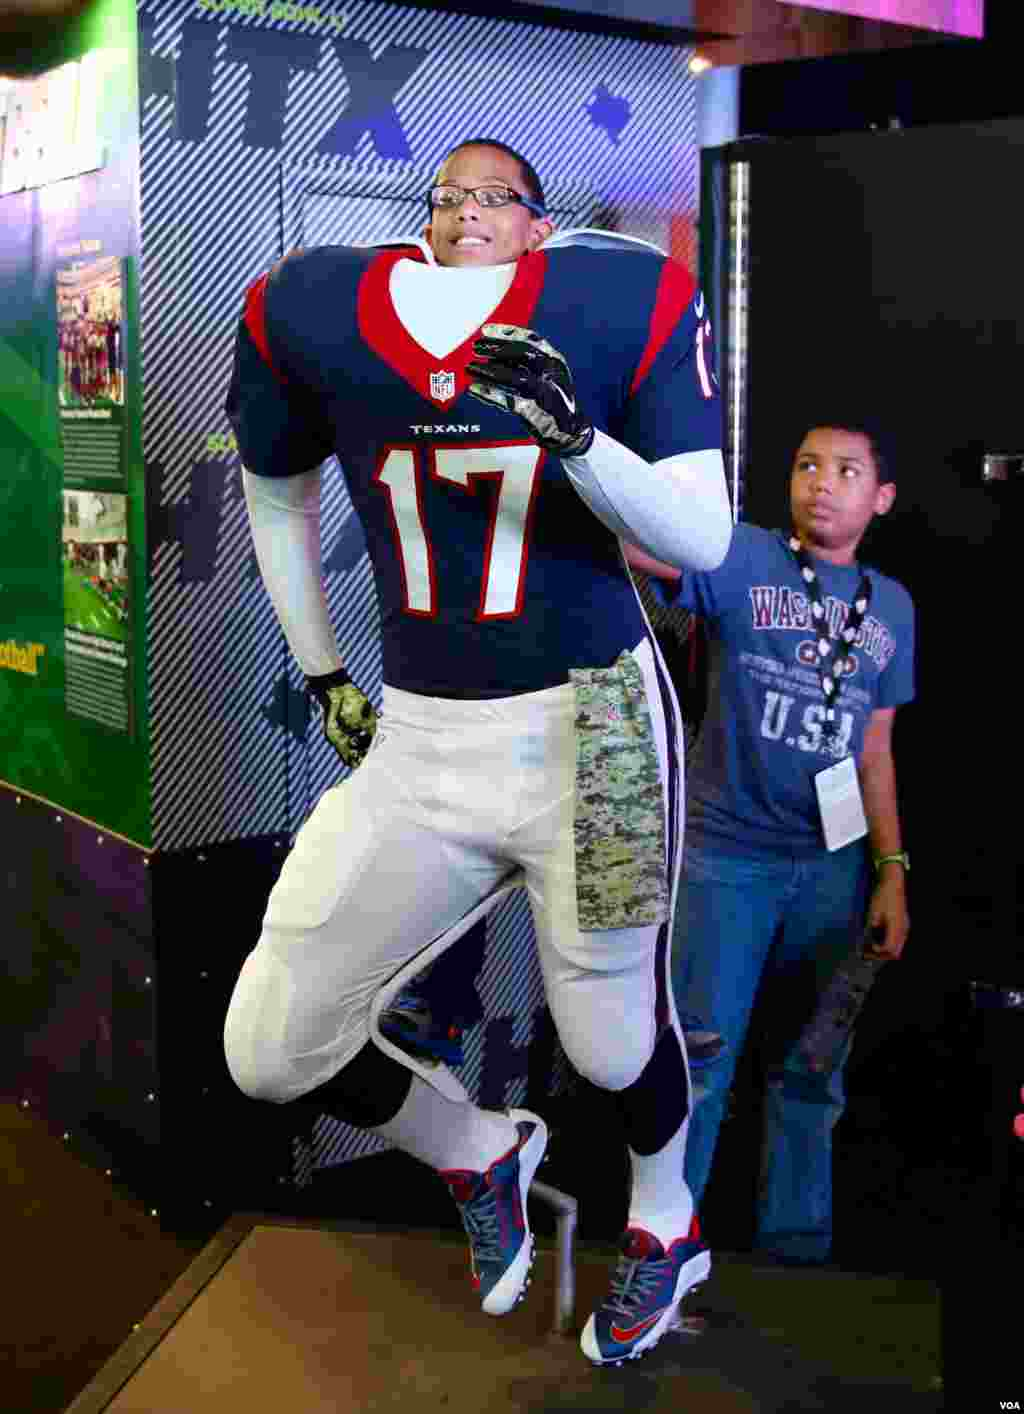 A young fan pretends to be a player on his favorite team, the Houston Texans, at the NFL Experience in downtown Houston. The Super Bowl, the NFL championship game and most watched football game worldwide, will be played here on Sunday, February 5th. (B. A